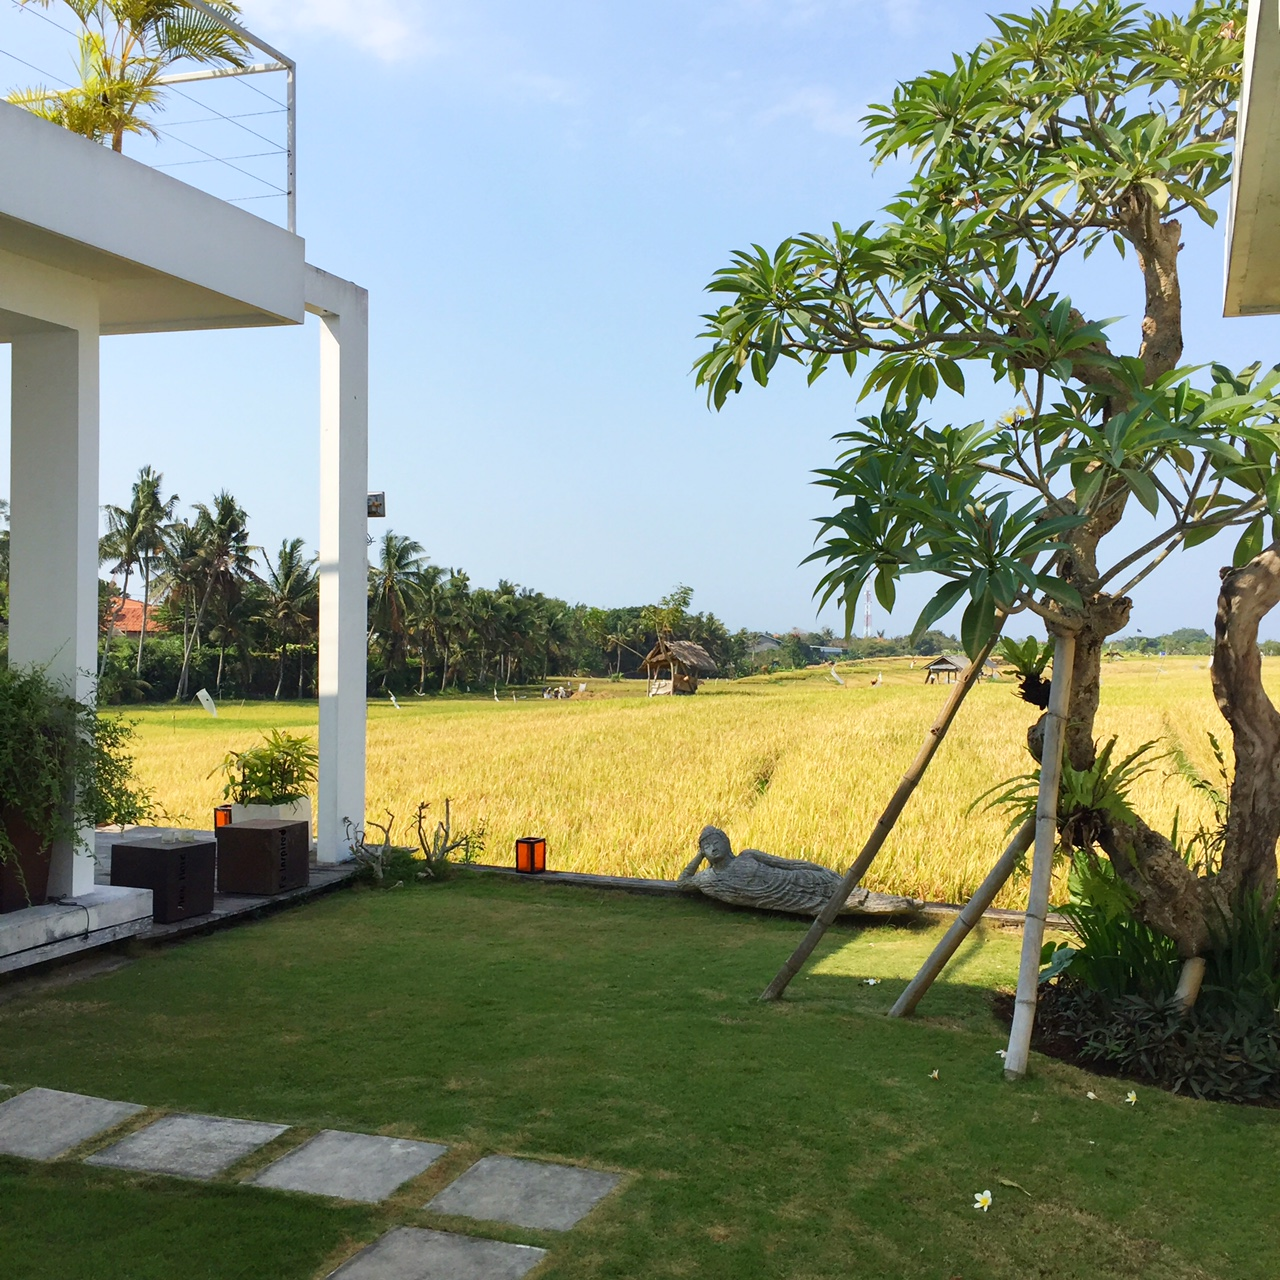 10 X Where To Stay In Bali